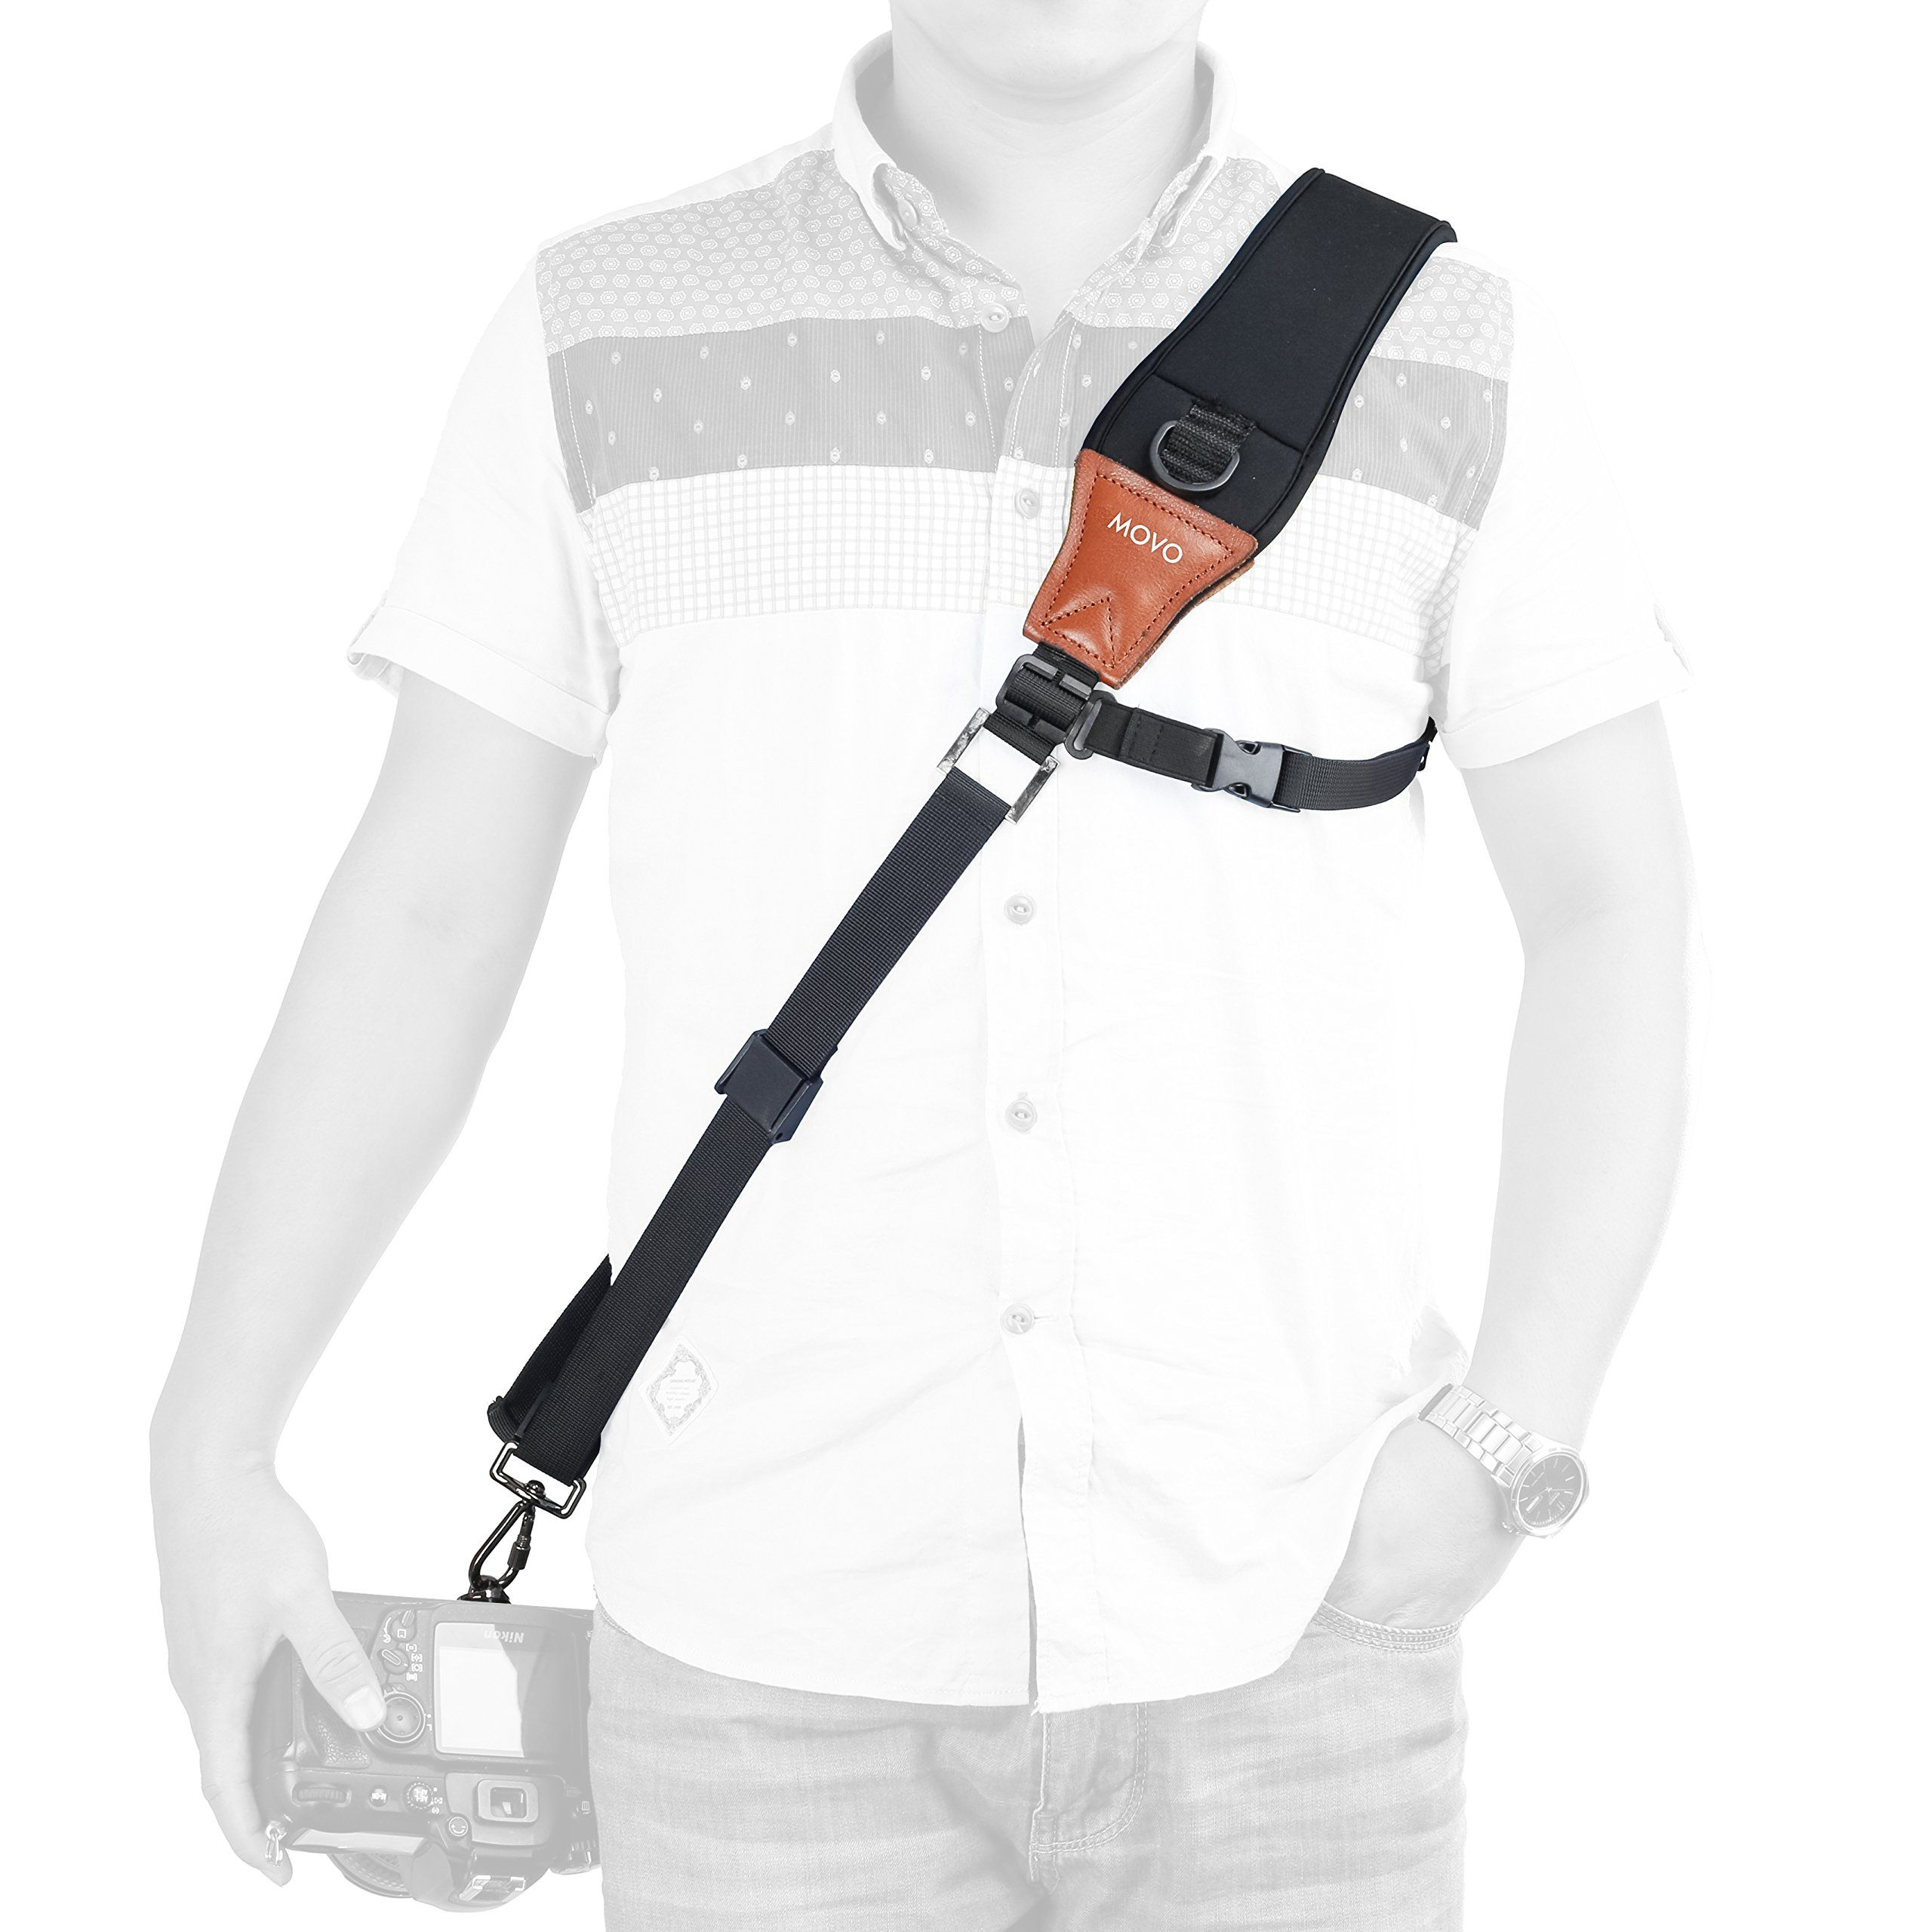 Movo Mp Ss7 Rapid Action Over The Shoulder Camera Sling Strap With Caden Quick Kamera Release Clip Neoprene Vintage Leather Pad